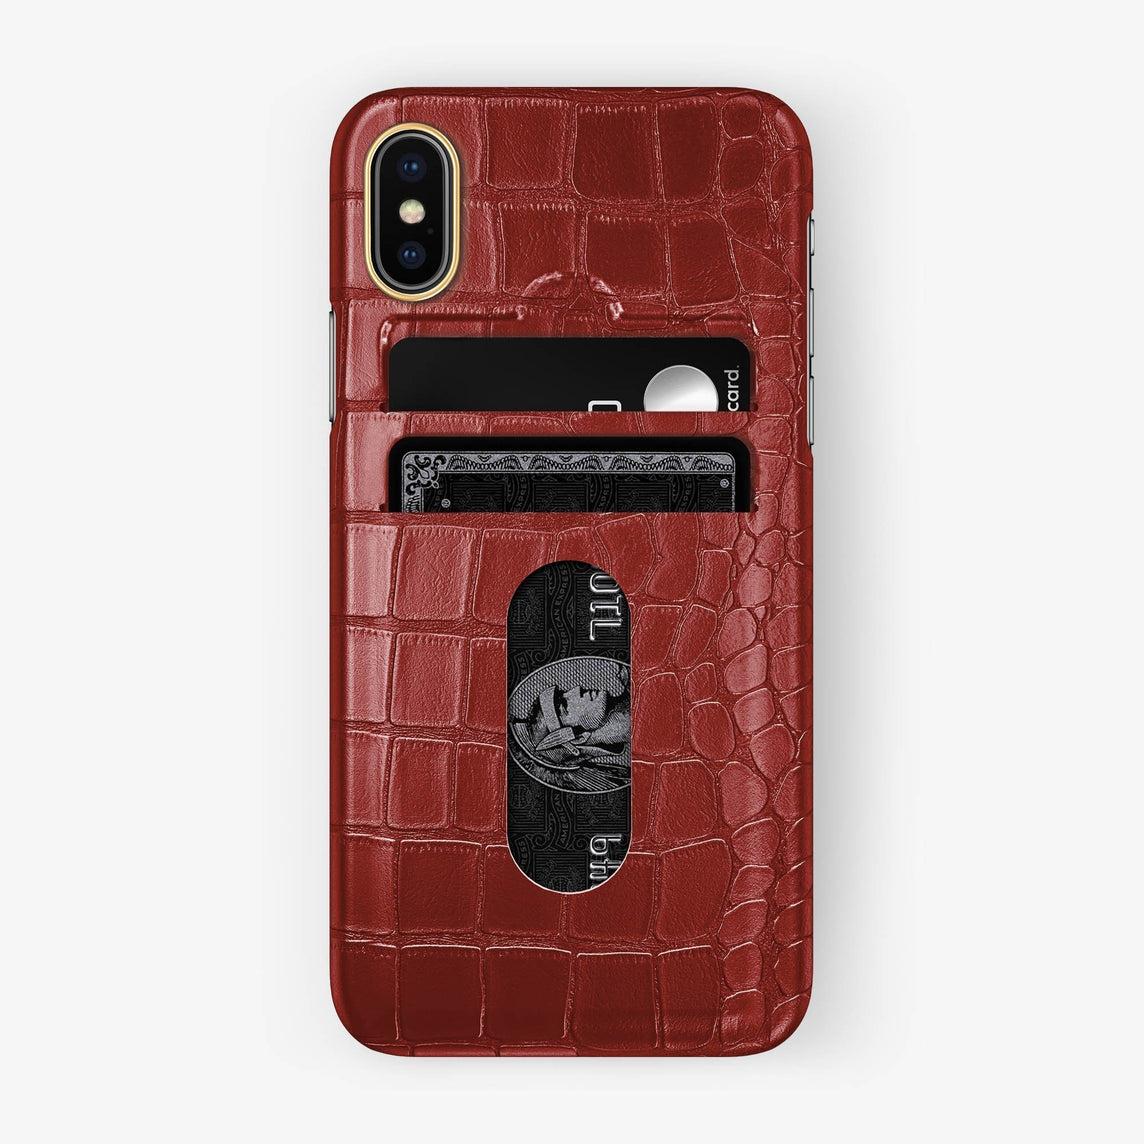 Alligator Card Holder Case iPhone Xs Max | Red - Yellow Gold - Hadoro